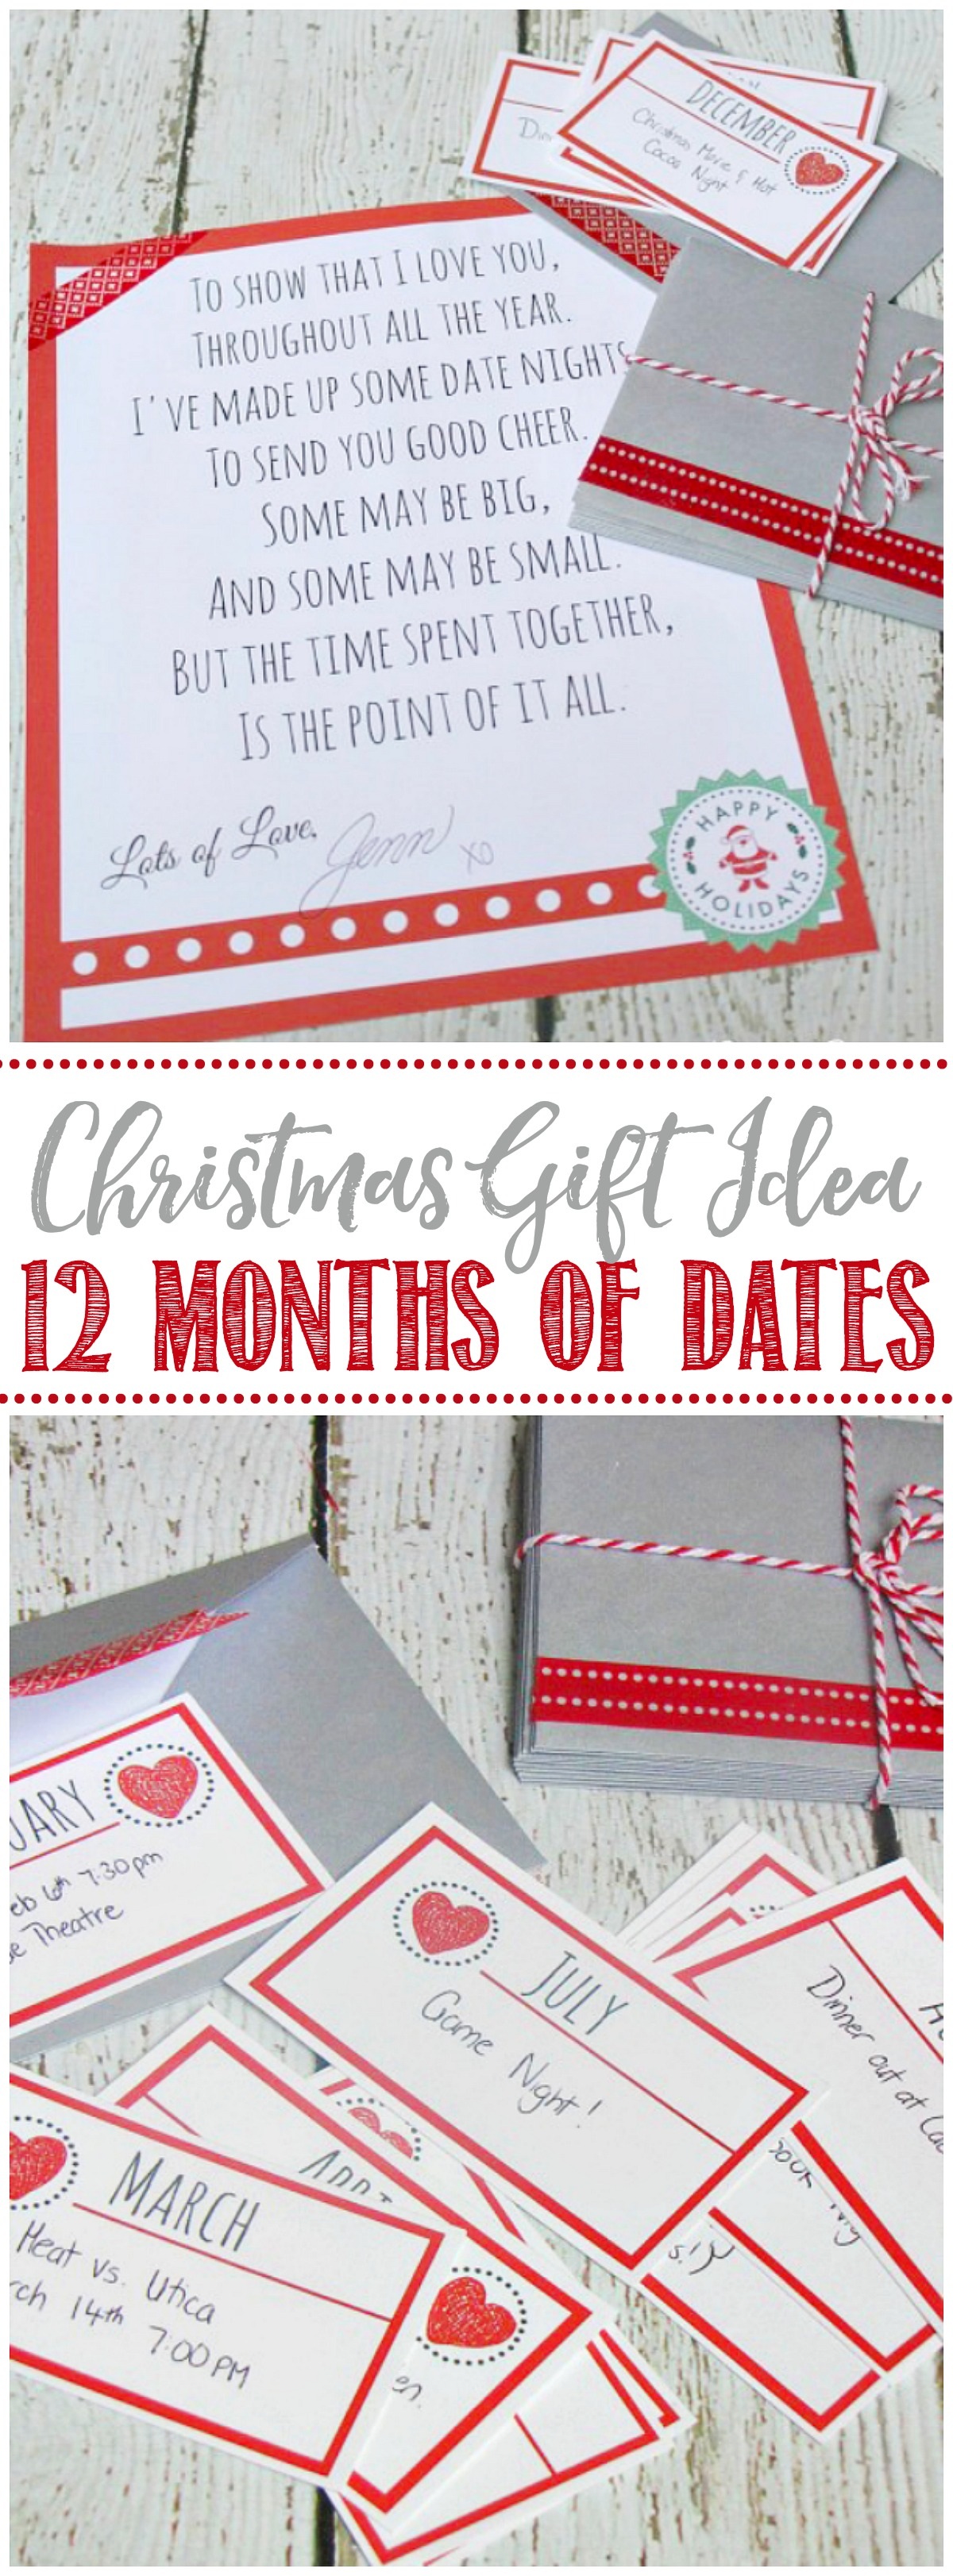 12 months of dates Christmas gift idea with free printables.